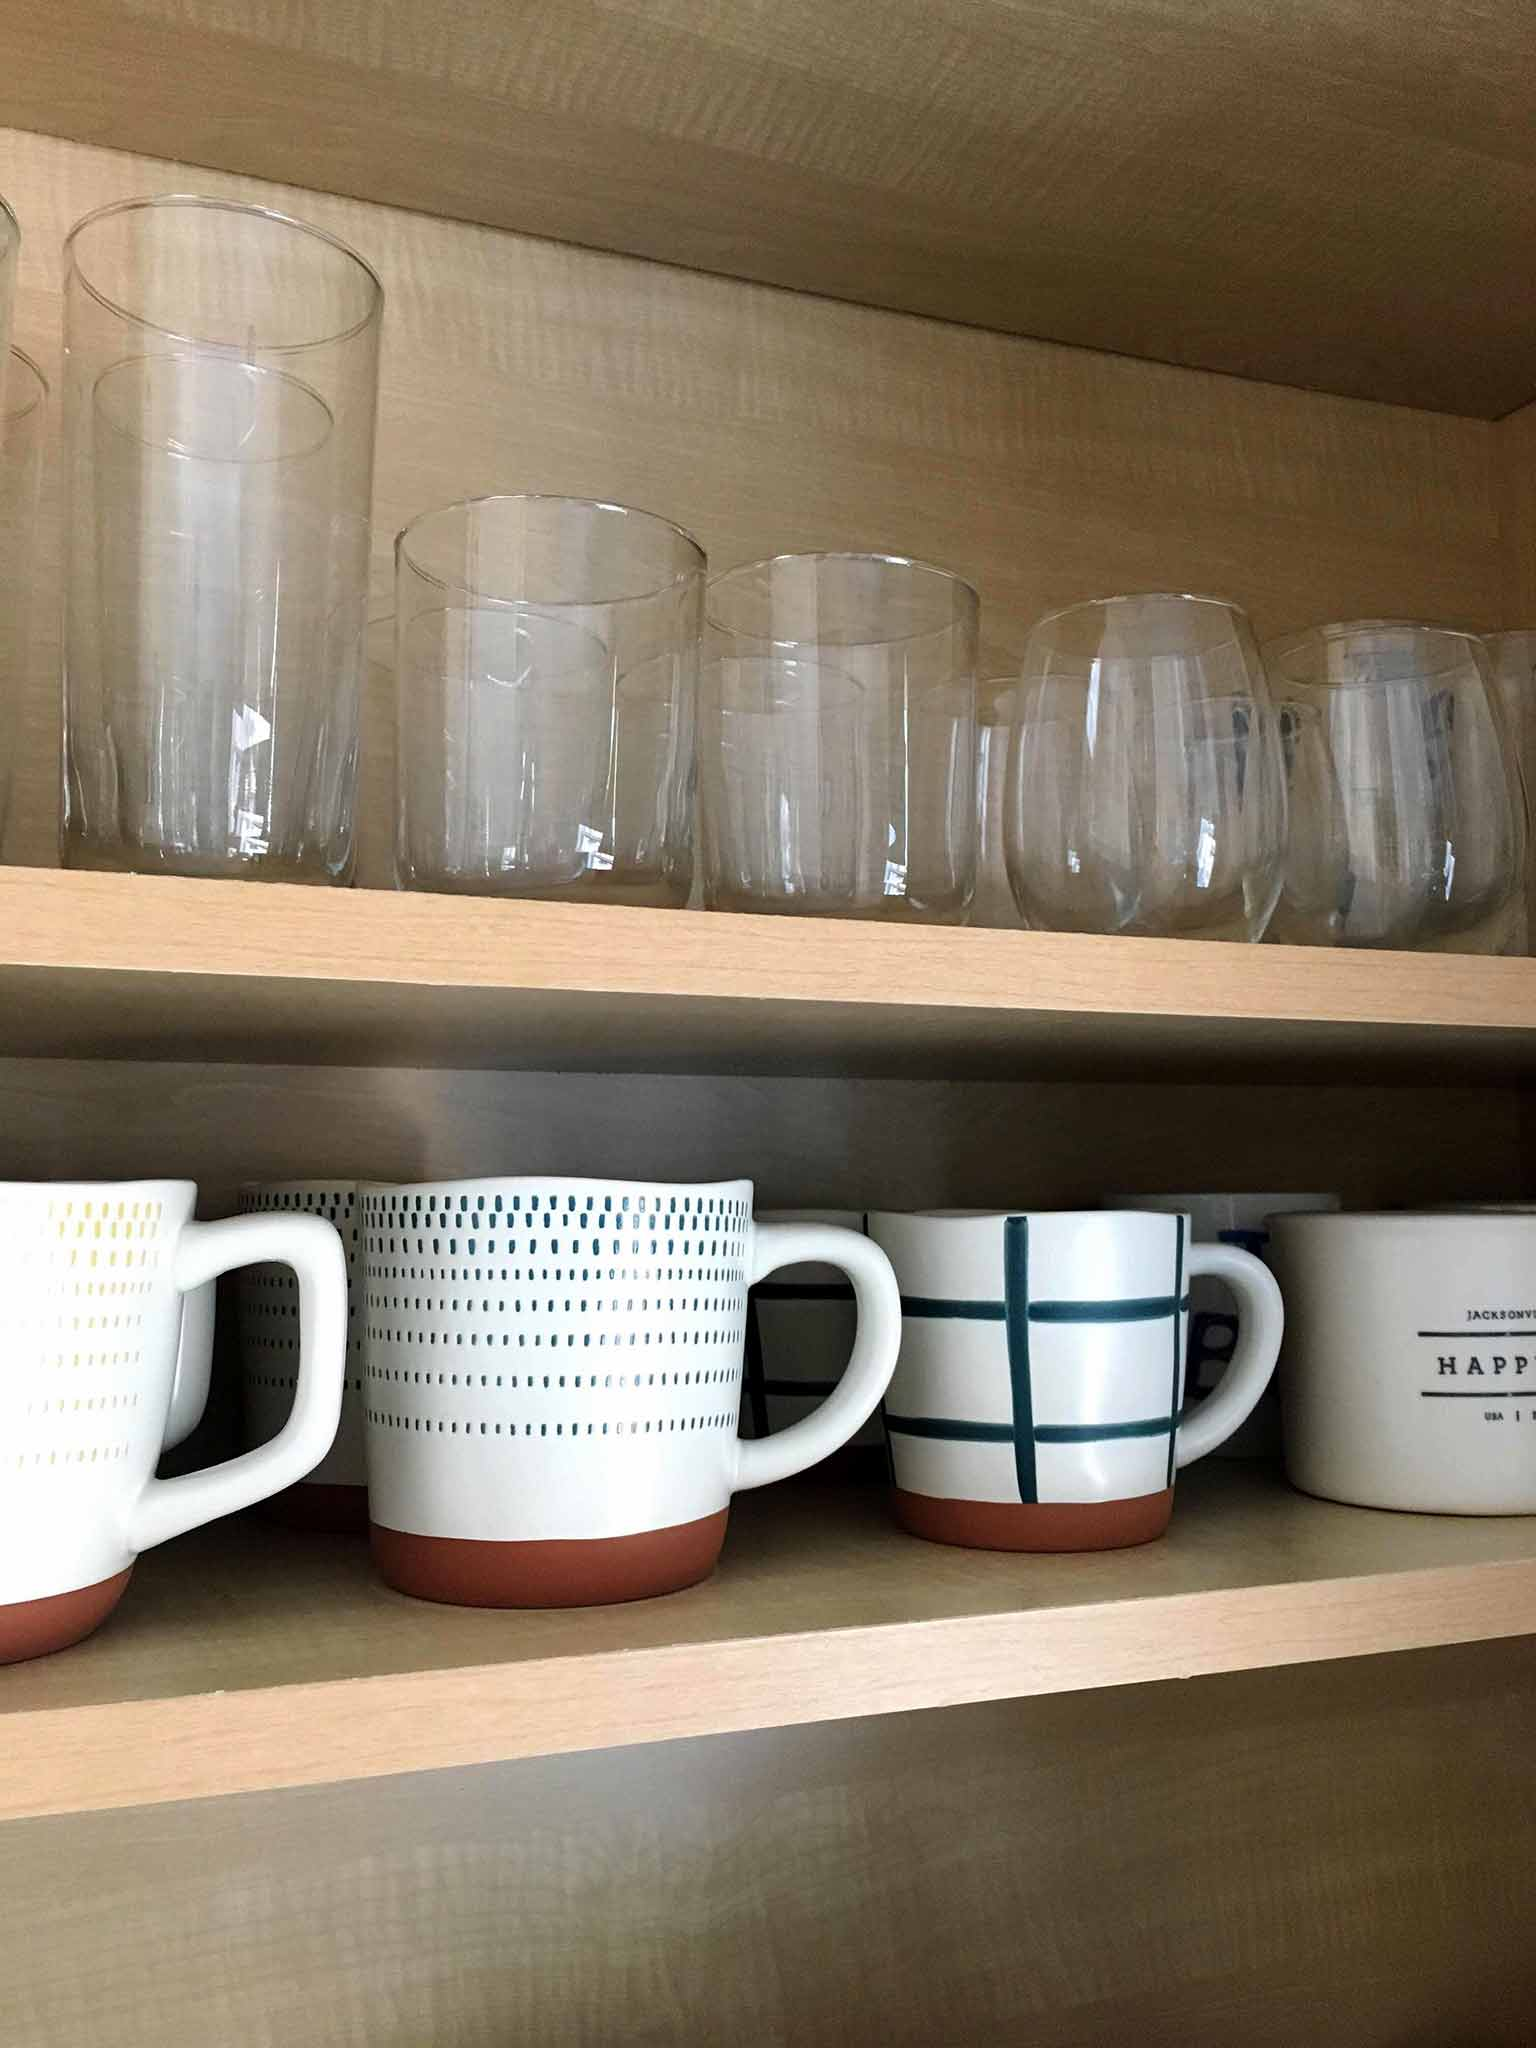 coffee mugs and glasses in kitchen cabinet